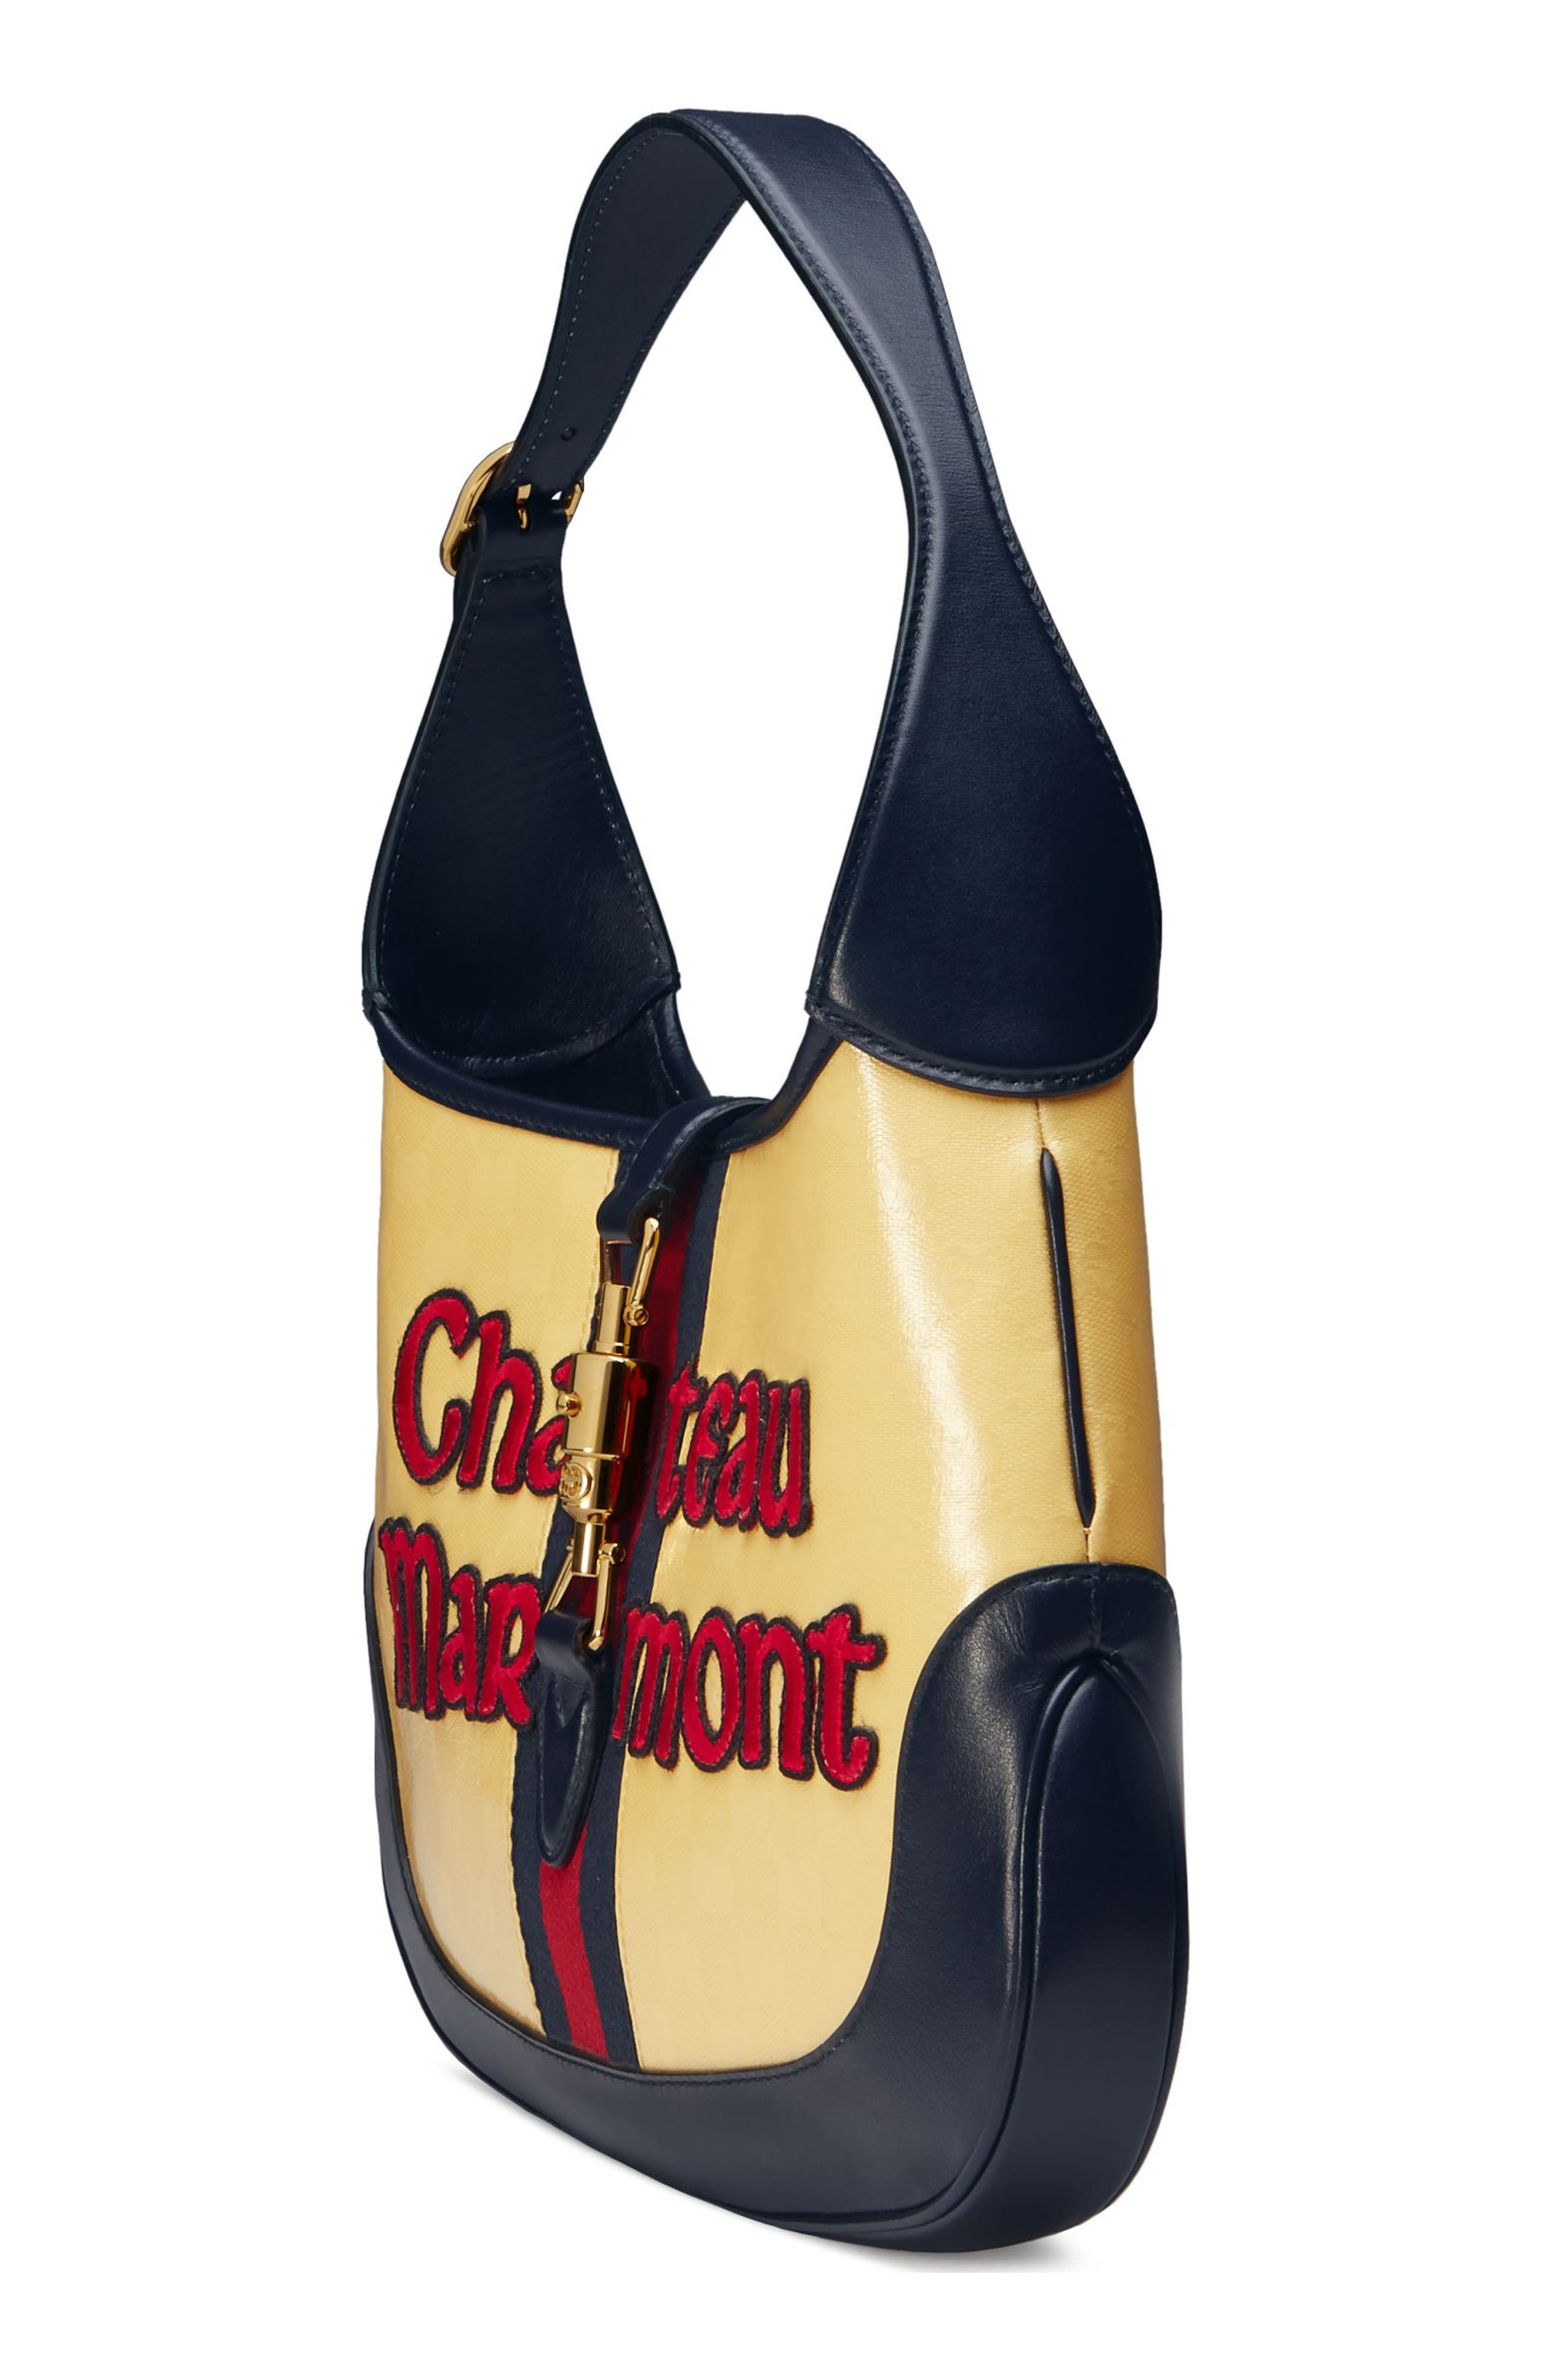 Medium Jackie Chateau Marmont GG Hobo,                             Alternate thumbnail 4, color,                             STRAW YELLOW/ BLU/ RED